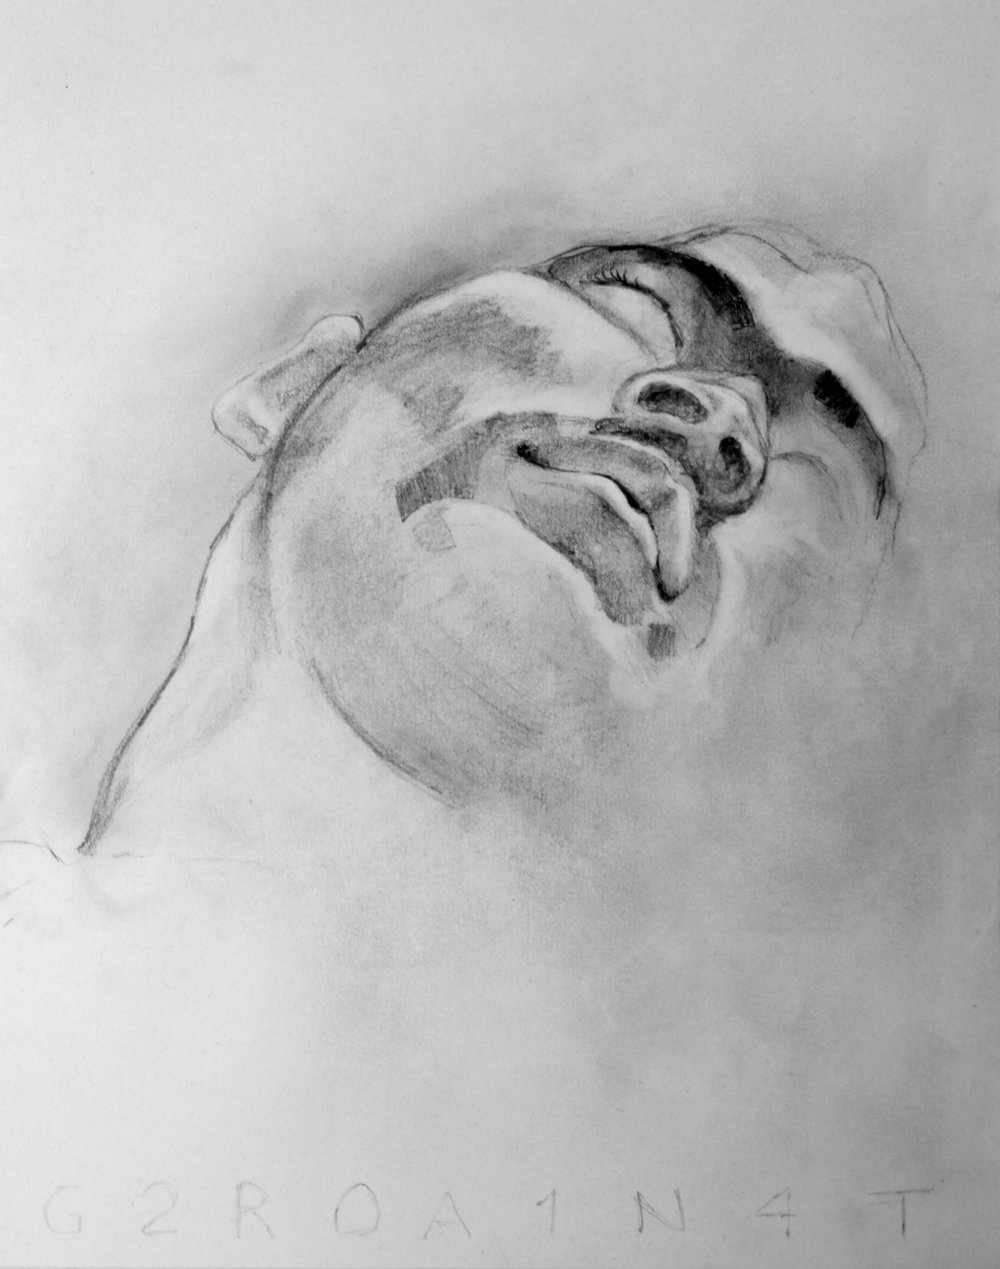 Dan 2 Graphite on Paper 11x14  $150.00